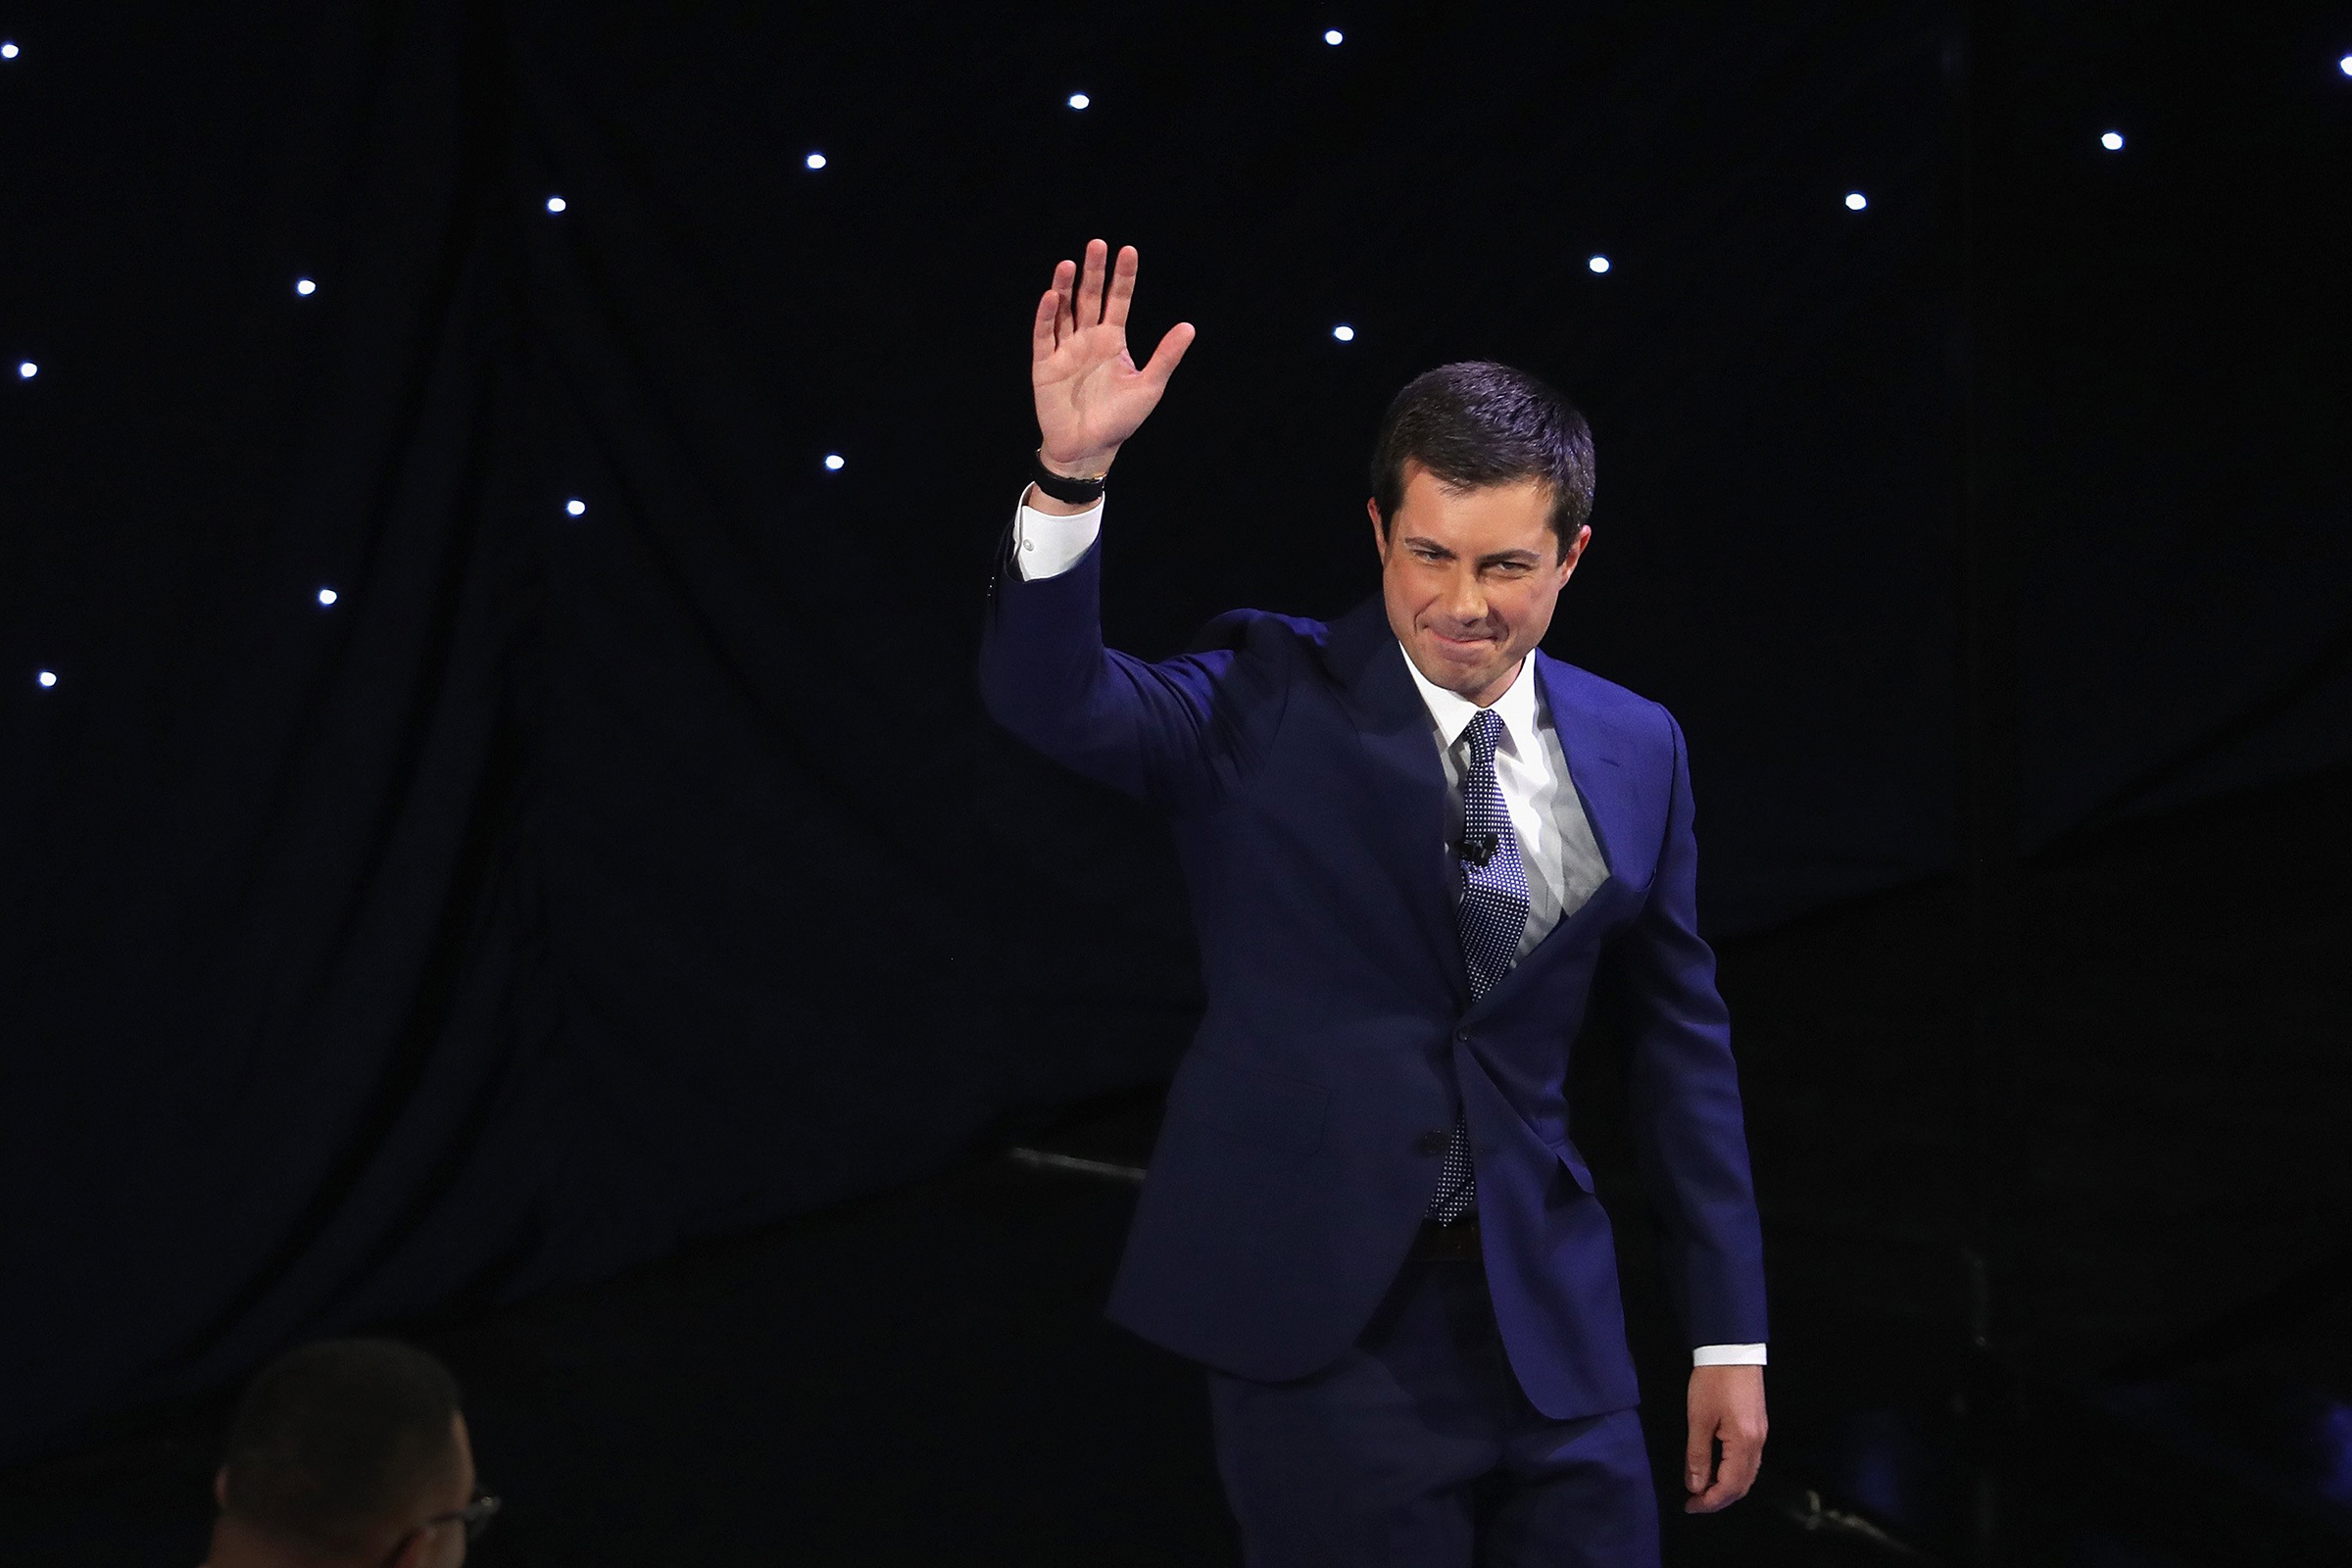 Democratic presidential candidate South Bend, Indiana Mayor Pete Buttigieg takes the stage at the beginning of the Democratic Presidential Debate at the Fox Theatre July 30, 2019 in Detroit, Michigan.